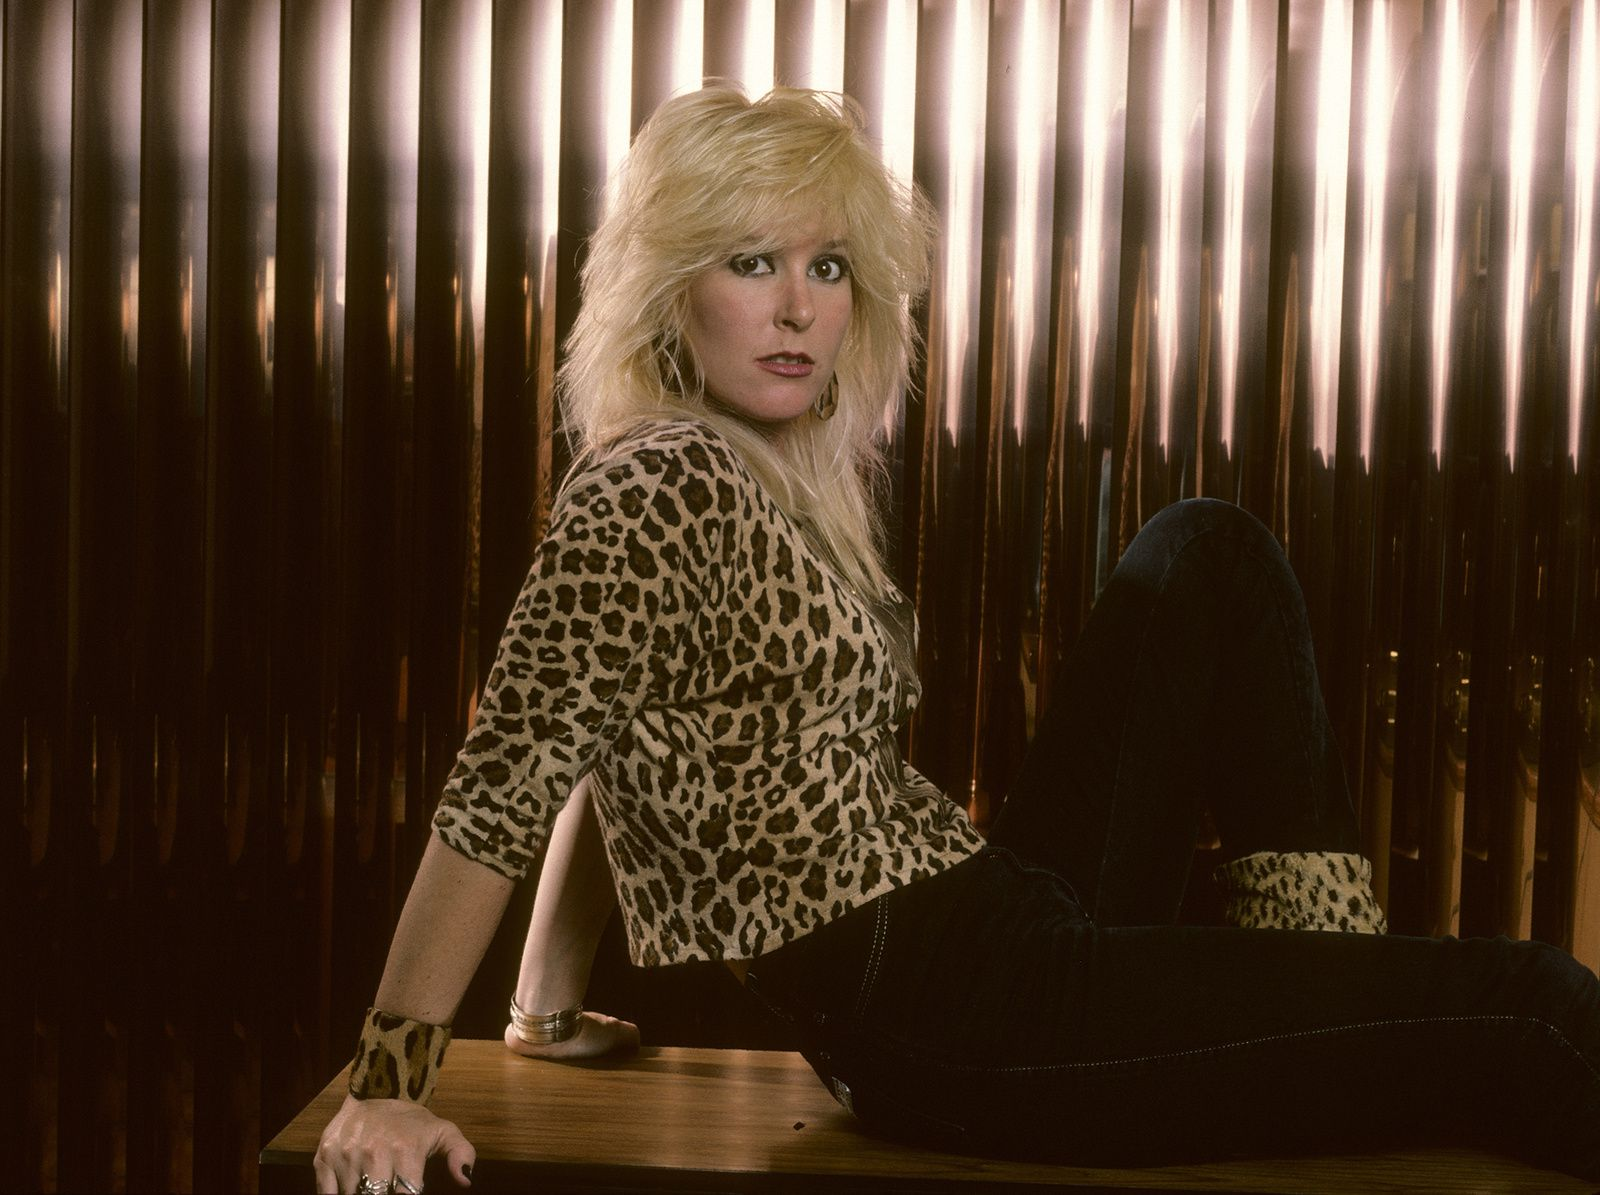 Lita Ford - in the 80s